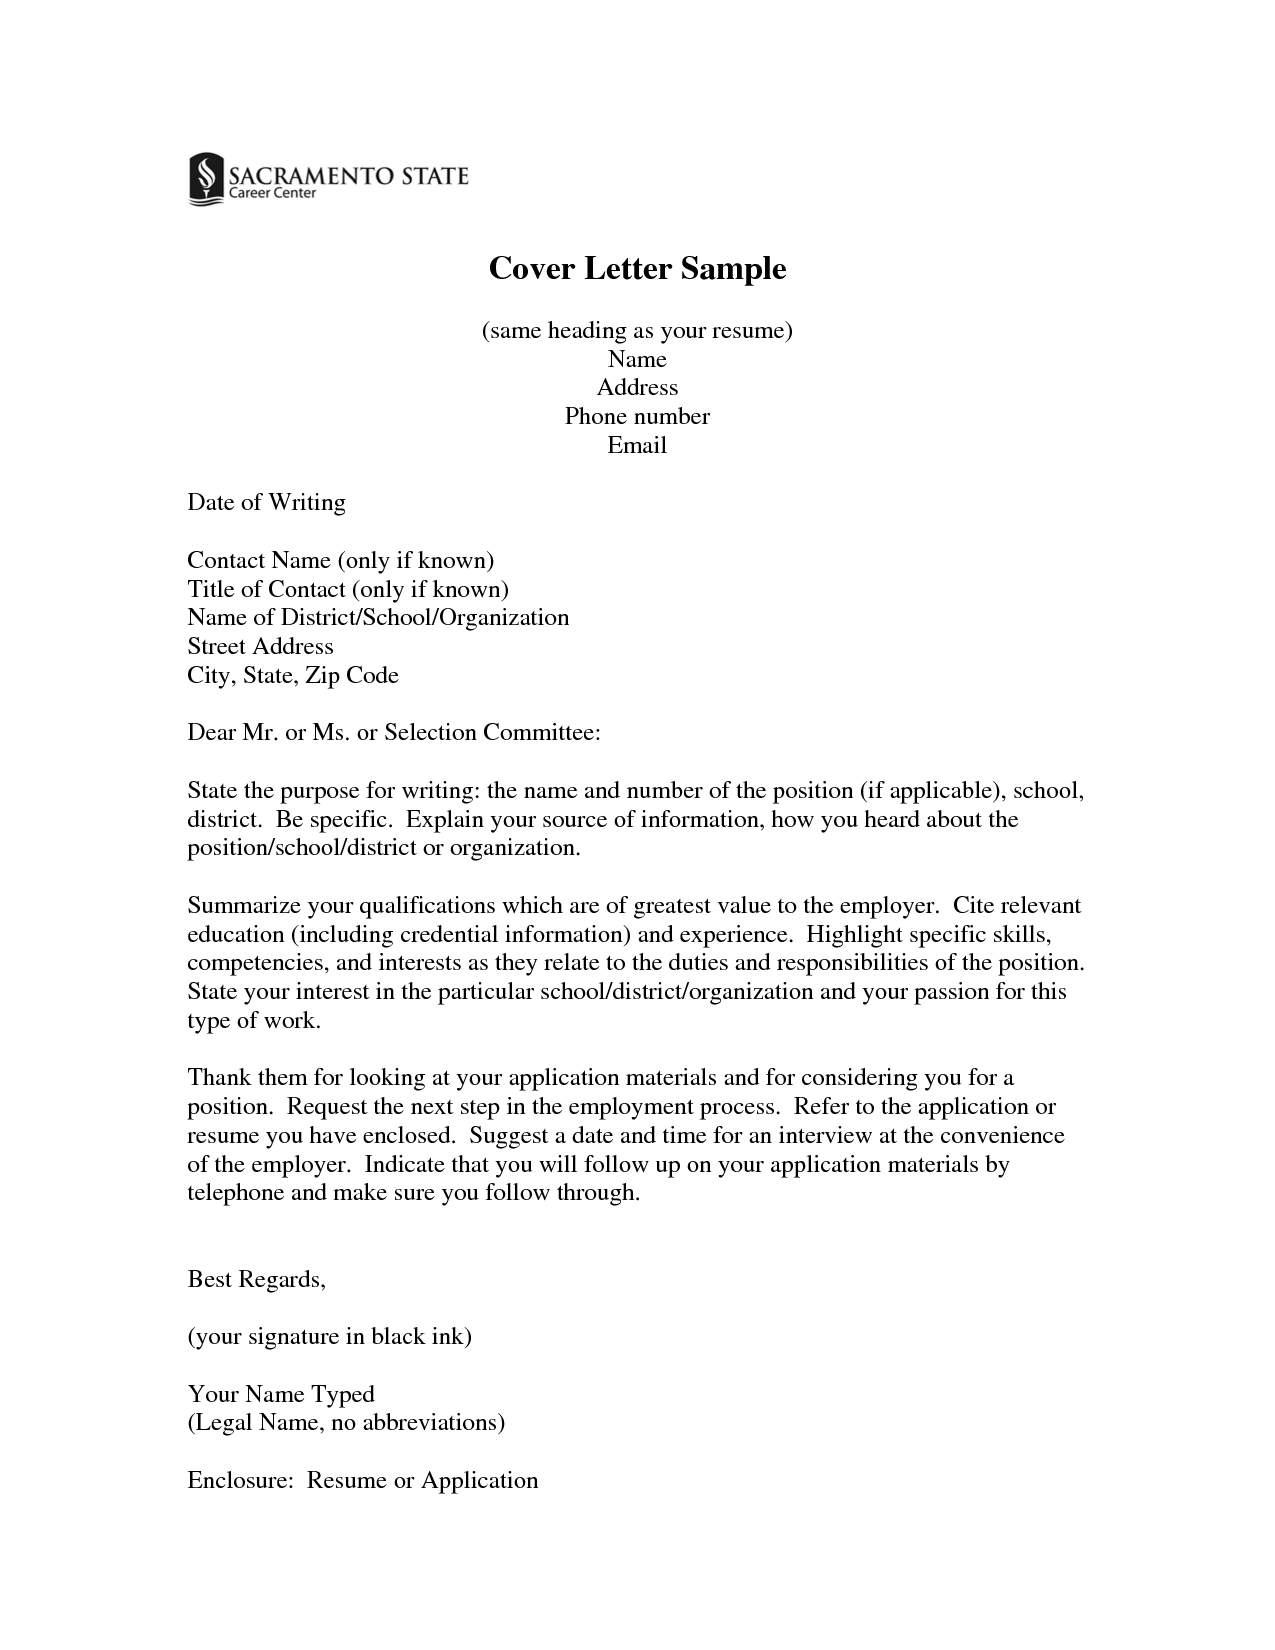 same cover letters for resume | Cover Letter Sample same heading as ...